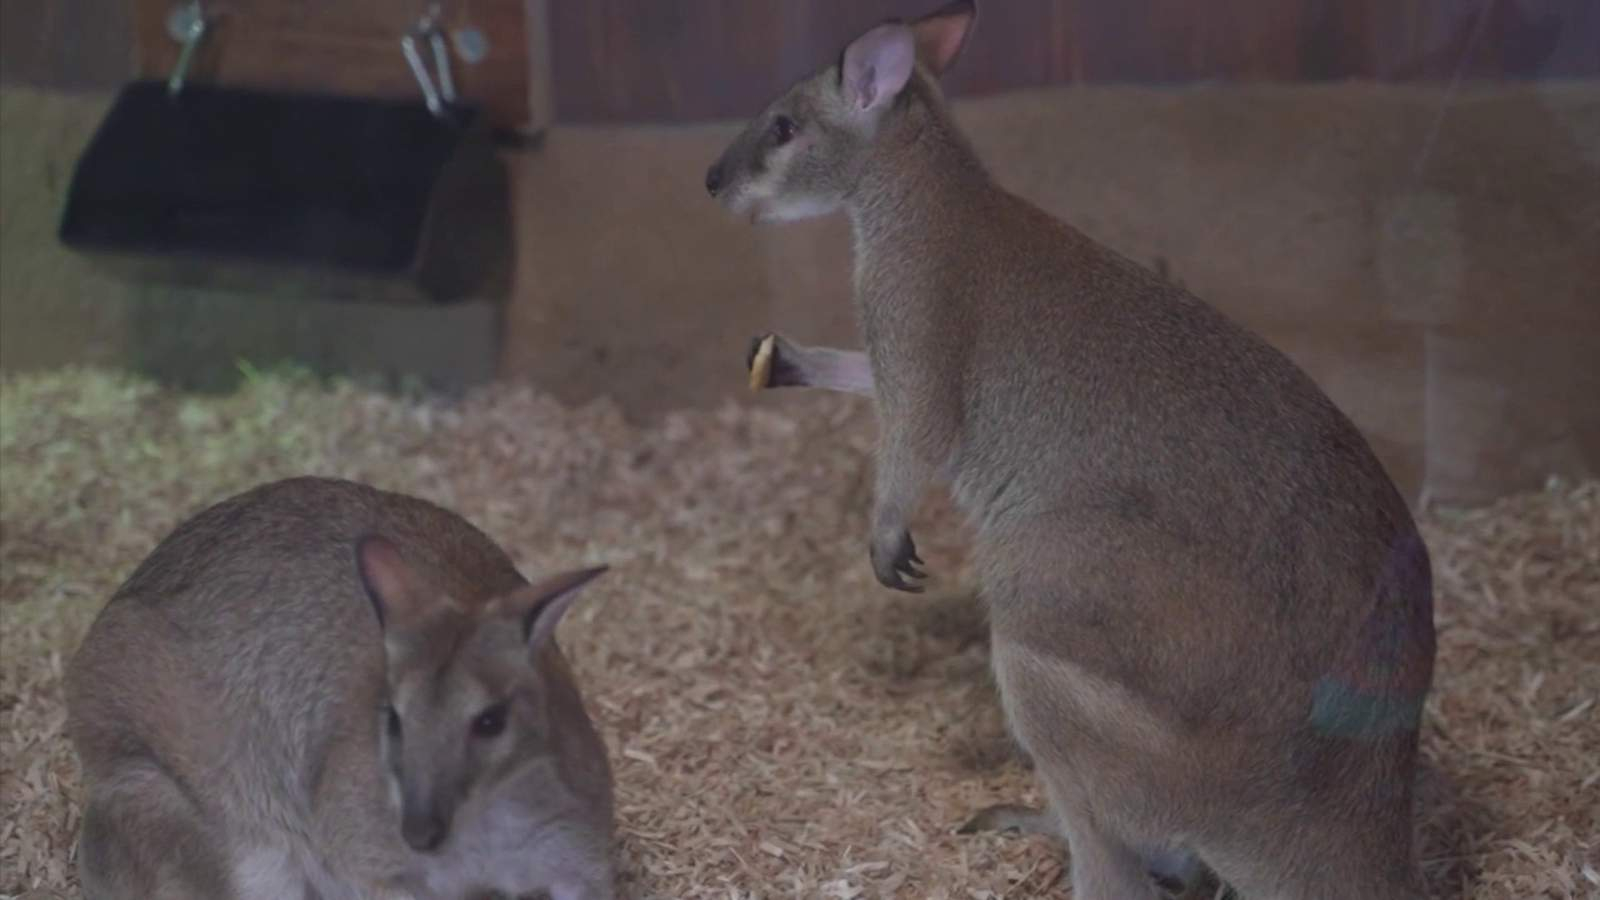 The Things These Animals Do Look Like Serious Tricks, But Intended For Deer Valley School Di